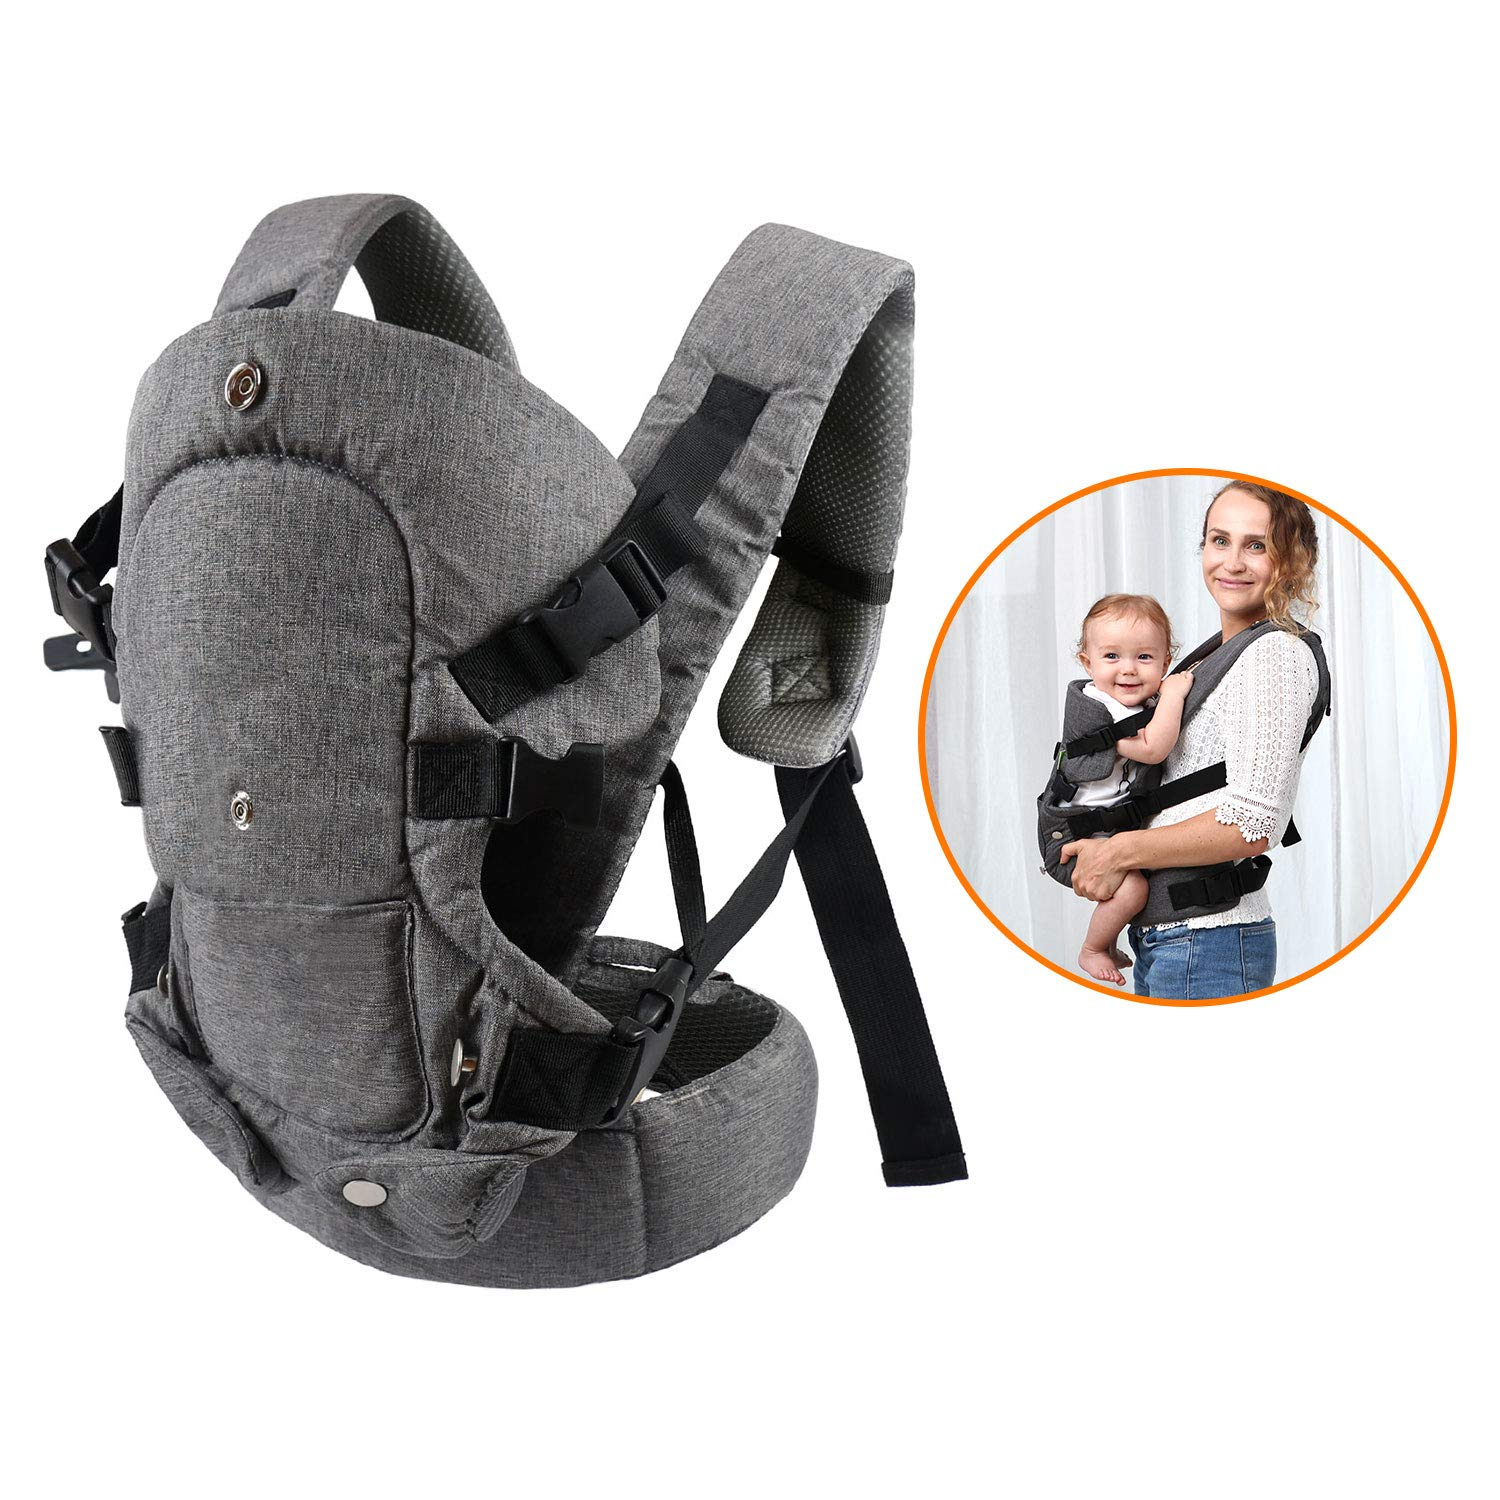 All Carry Position Newborn to Toddlers Ergonomic Carrier with Soft Breathable Air Mesh and All Adjustable Buckles caiyuangg Baby Convertible Carrier